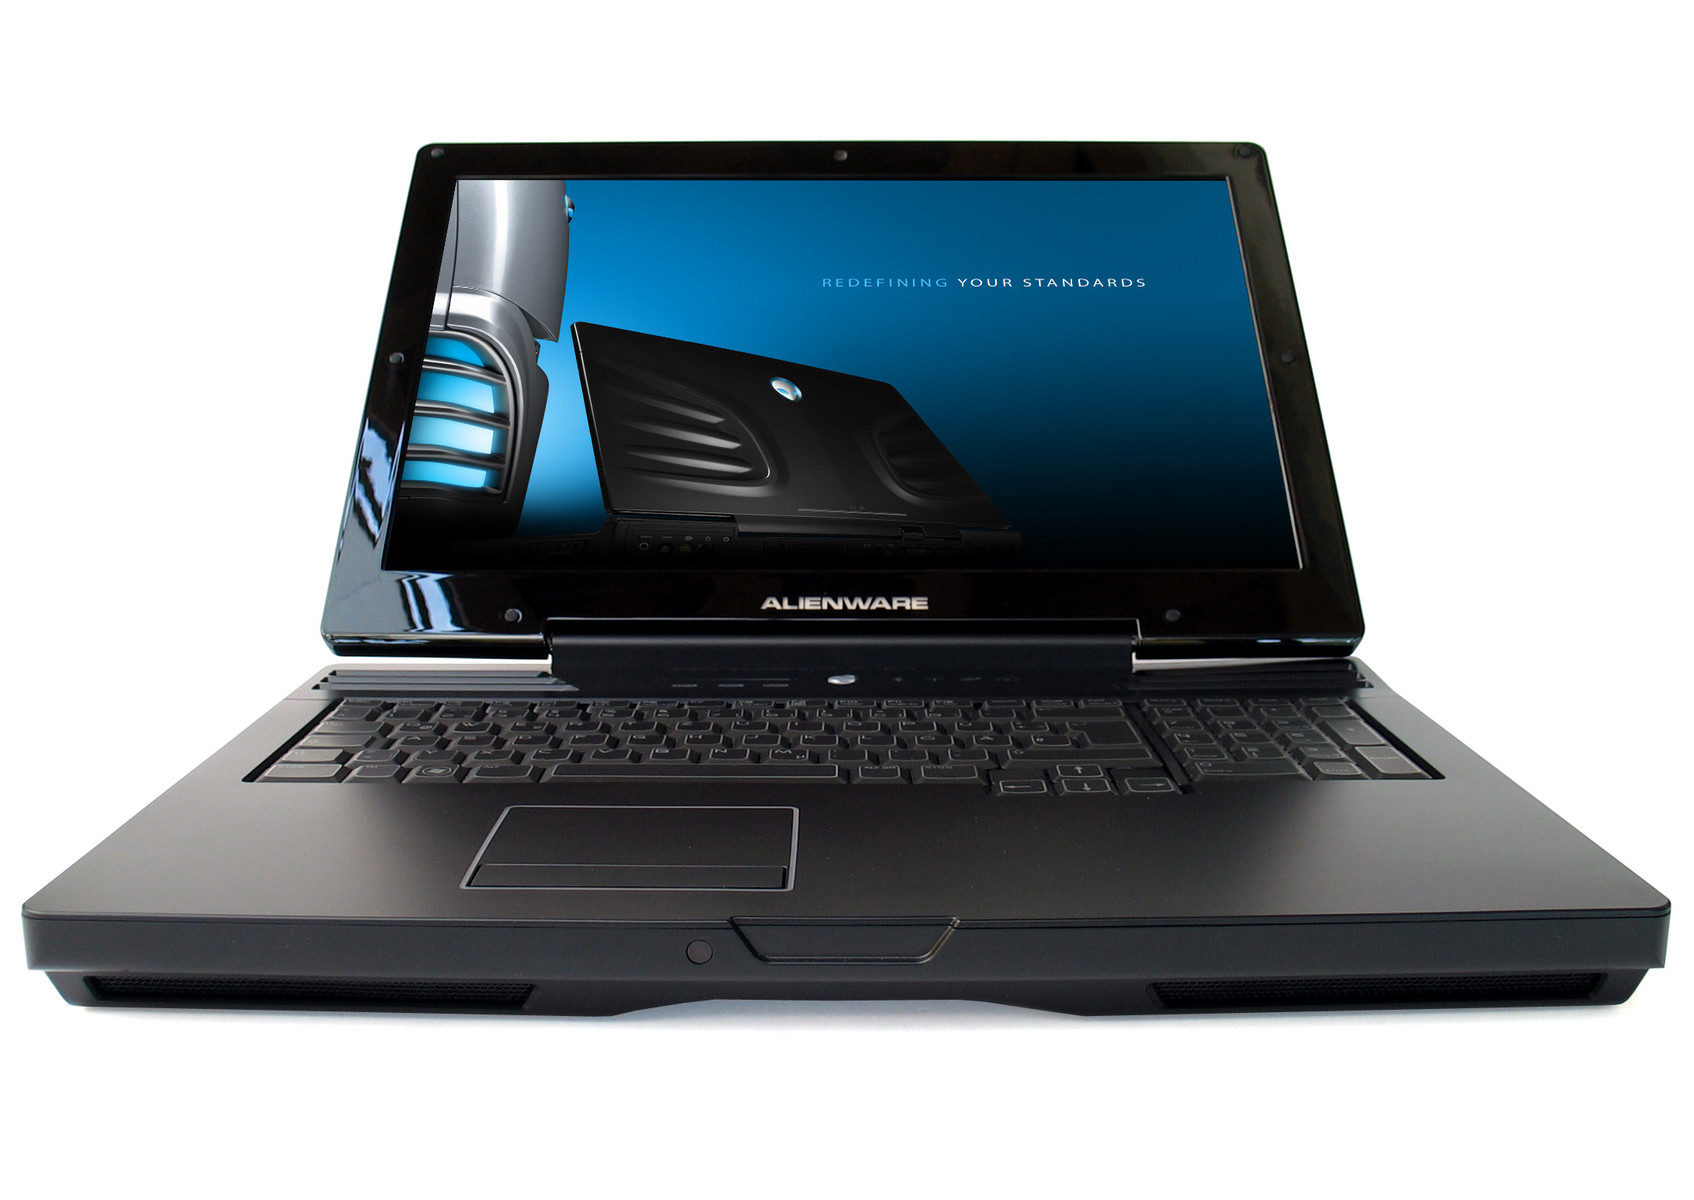 ALIENWARE ATI SERIES WINDOWS 8 X64 DRIVER